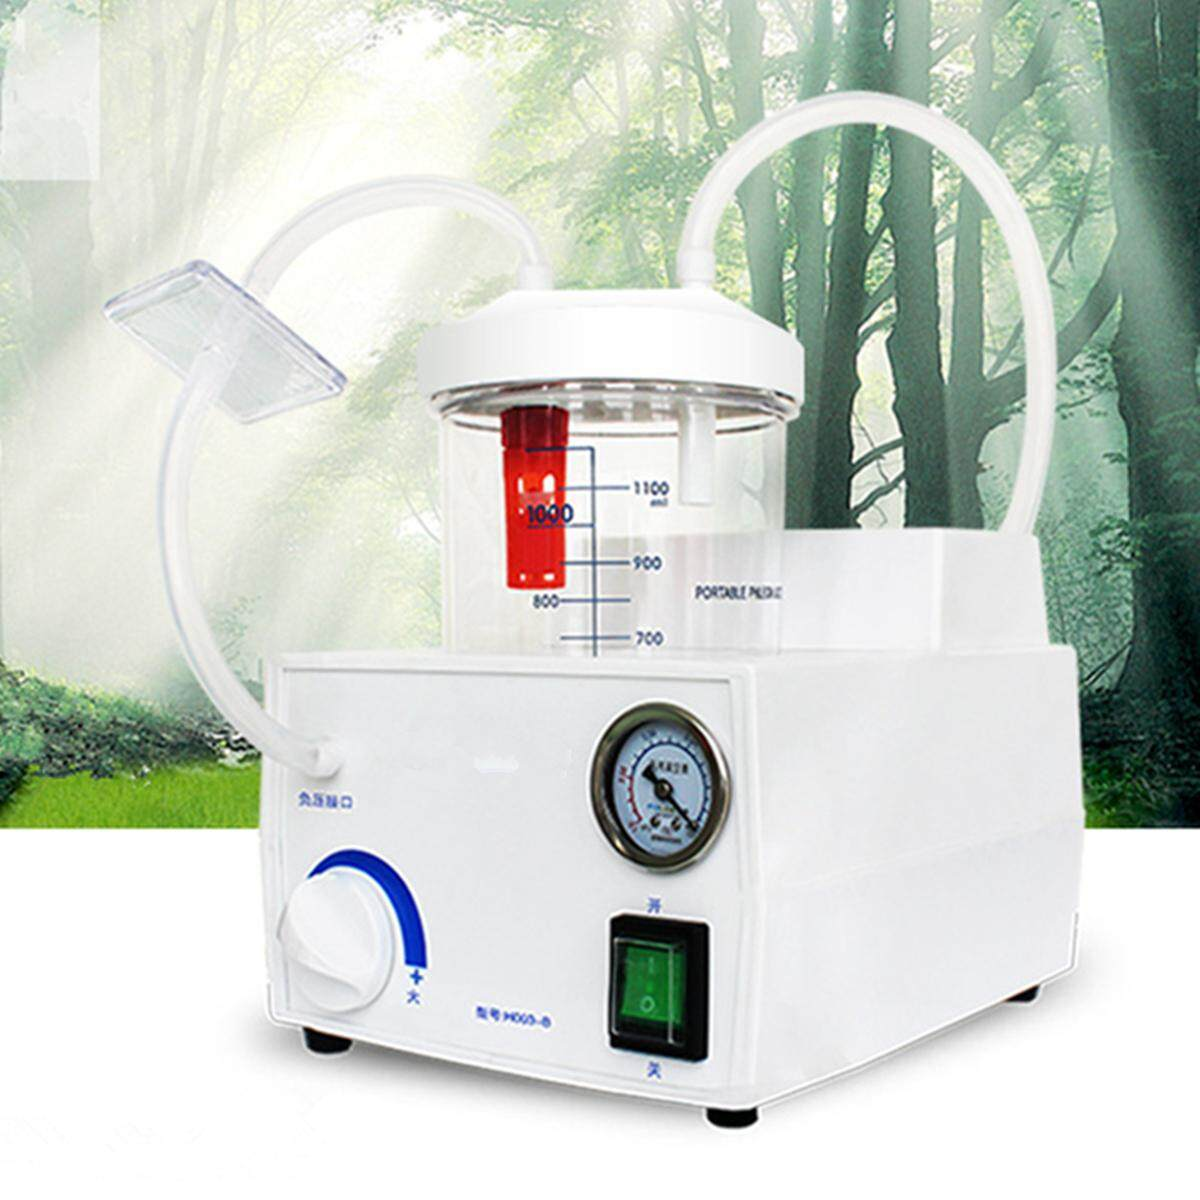 Portable Quiet Suction Unit Vacuum Phlegm Medical Emergency Aspirator Machine By Glimmer.